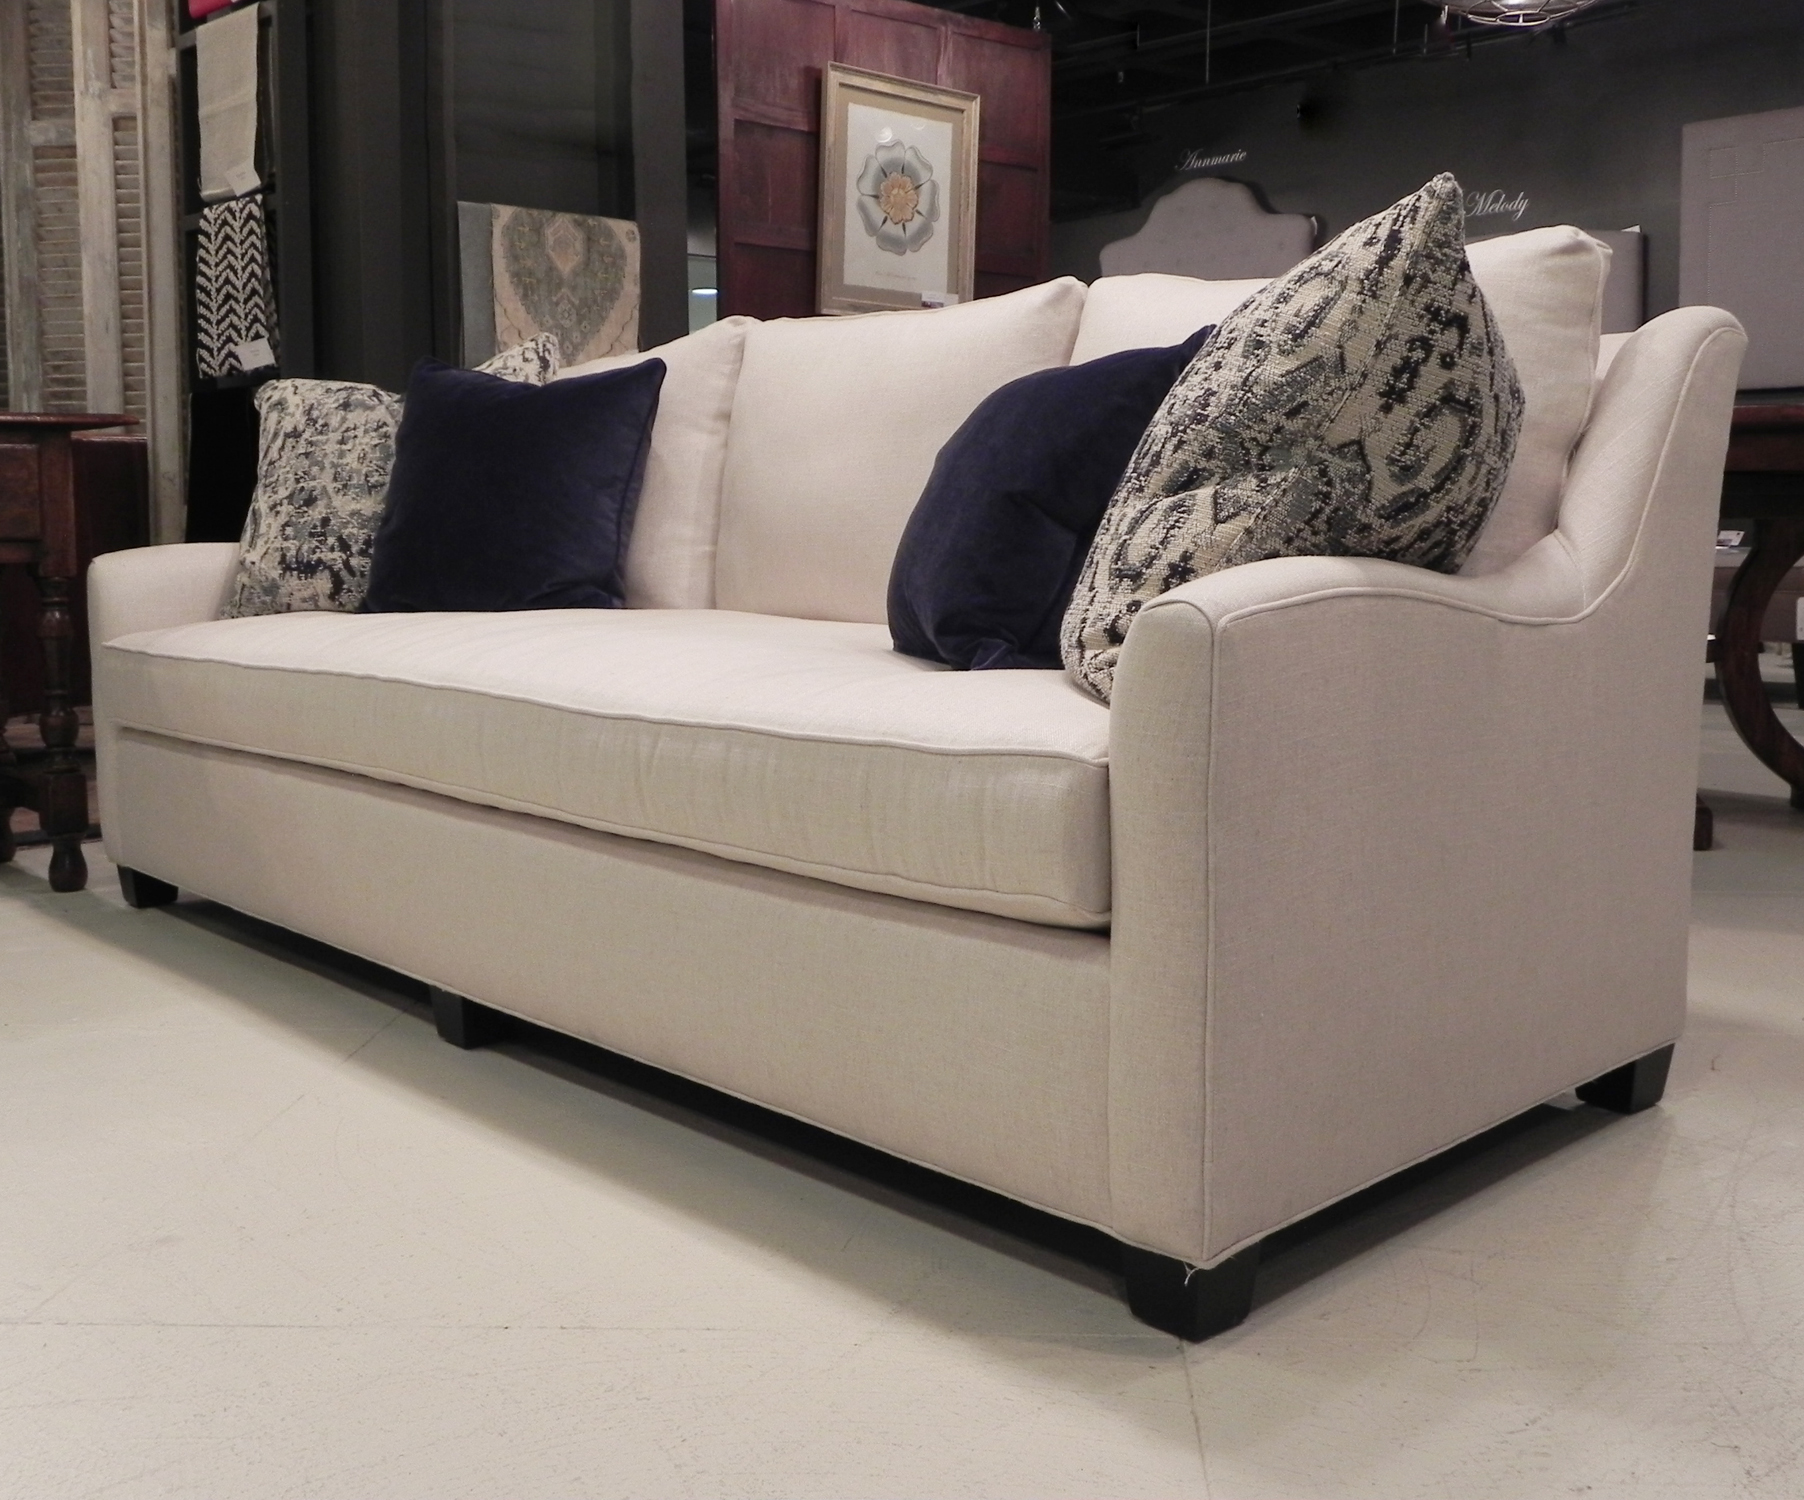 Upholstered Sofas & Chairs Englishman s Fine Furnishings